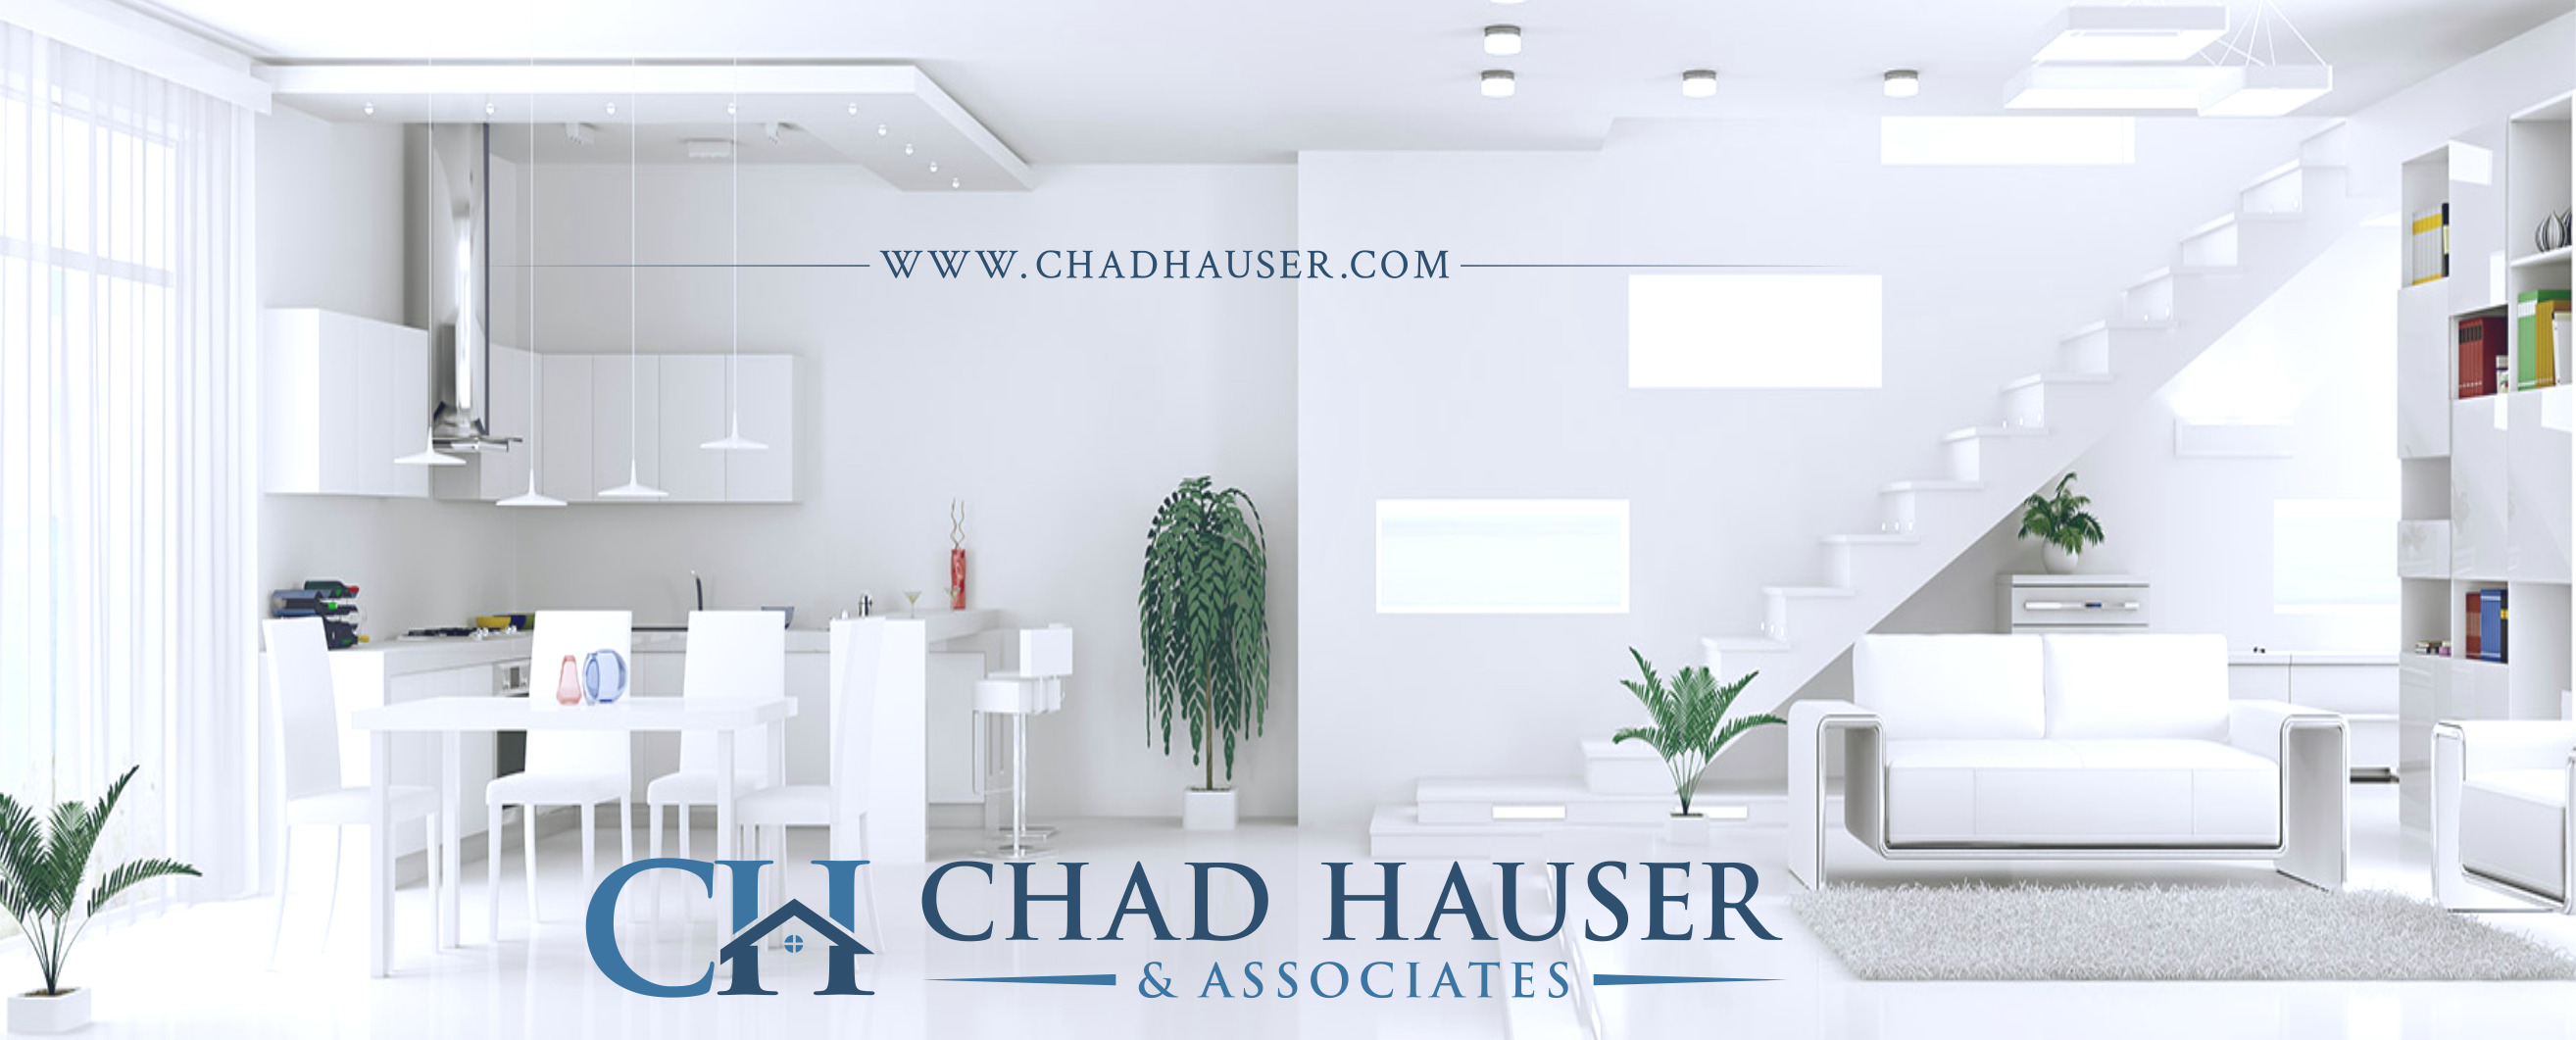 Chad Hauser Real Estate Professional Home